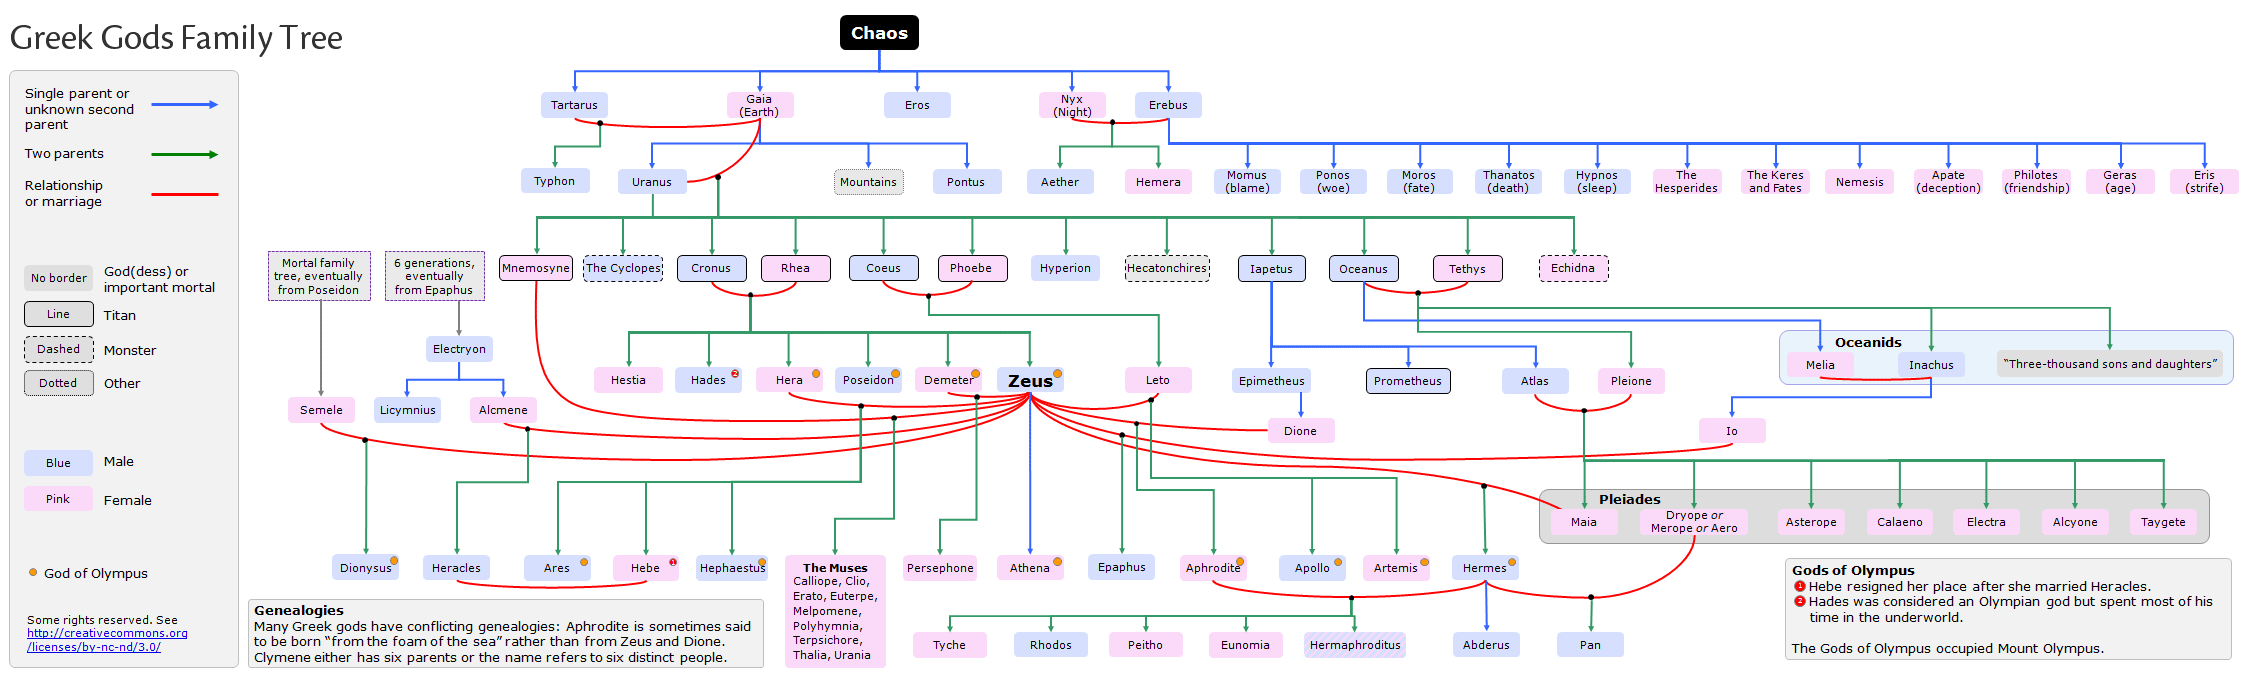 Family tree chart of the Titans